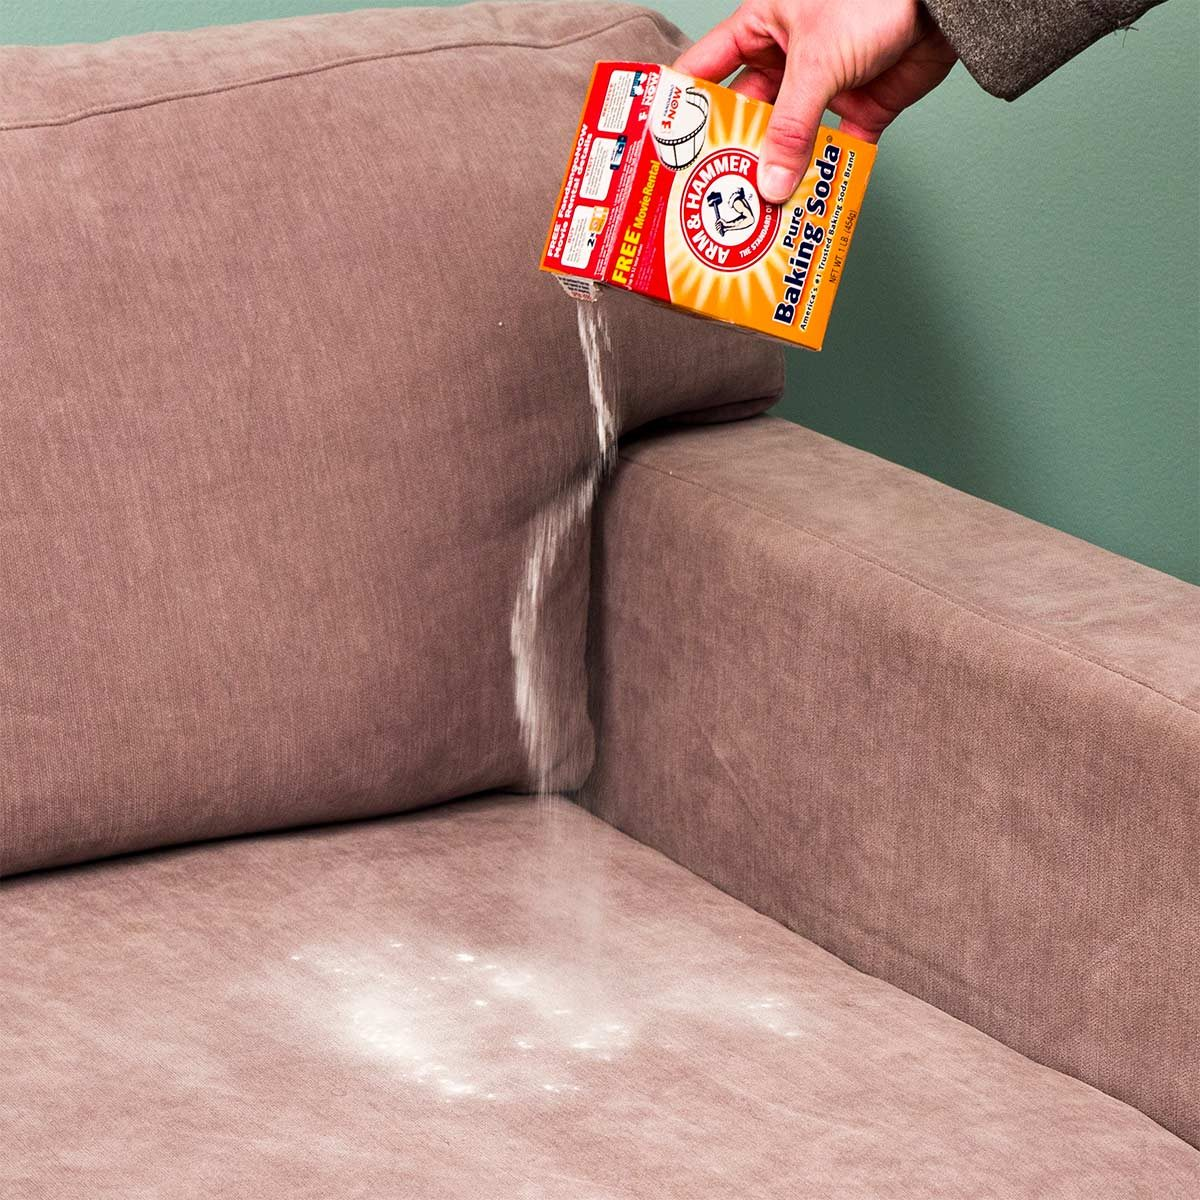 pouring baking soda onto upholstery